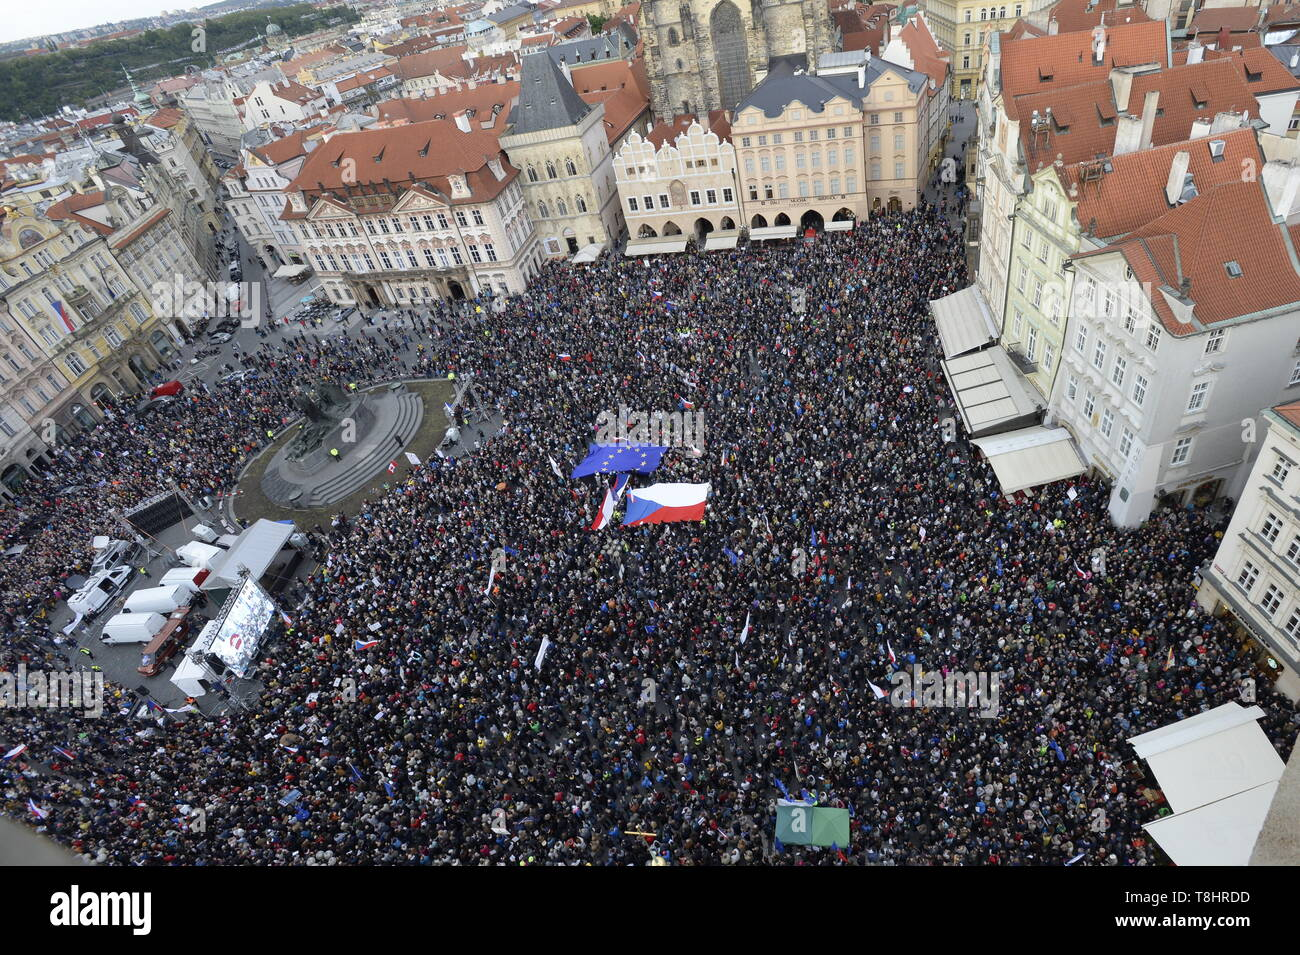 Prague, Czech Republic. 13th May, 2019. About 20,000 people attend third demonstration against PM Babis and new Justice Minister Benesova in the centre of Prague, Czech Republic, May 13, 2019. Credit: Katerina Sulova/CTK Photo/Alamy Live News Stock Photo